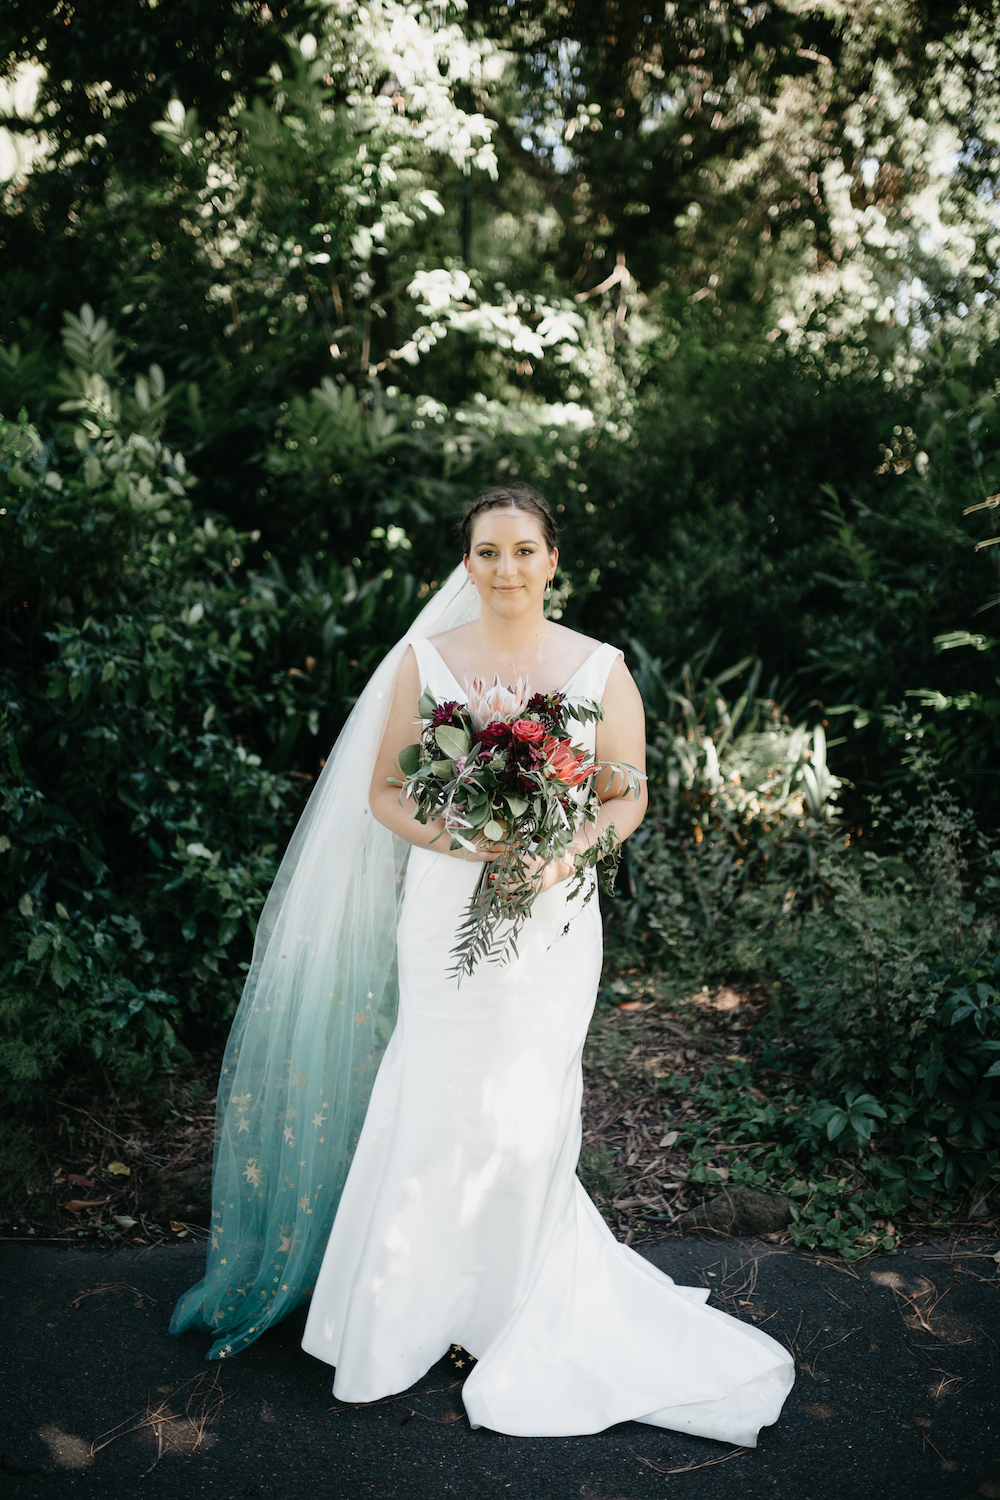 The bride was wearing a plain fit and flare wedding gown with a deep neckline and a gorgeous blue ombre veil